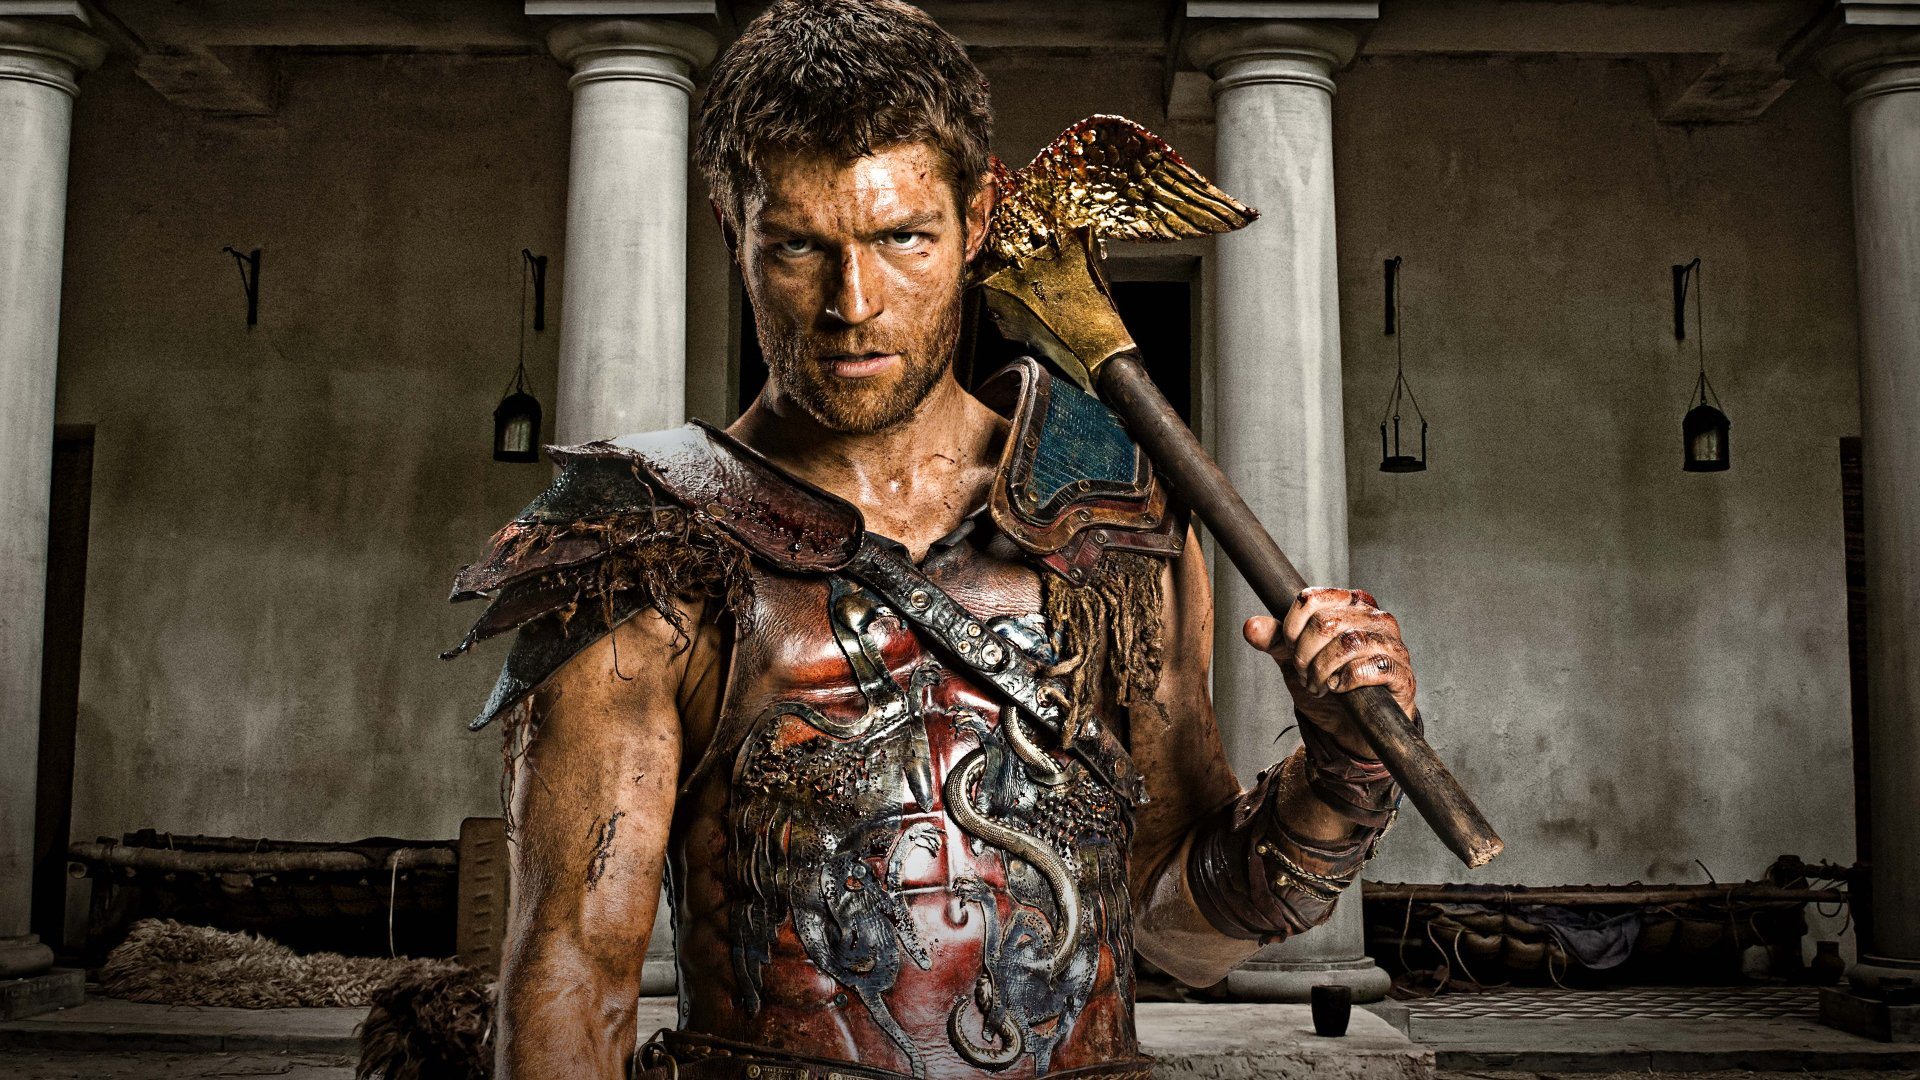 Spartacus 4k ultra hd wallpaper background image - Tv series wallpaper 4k ...